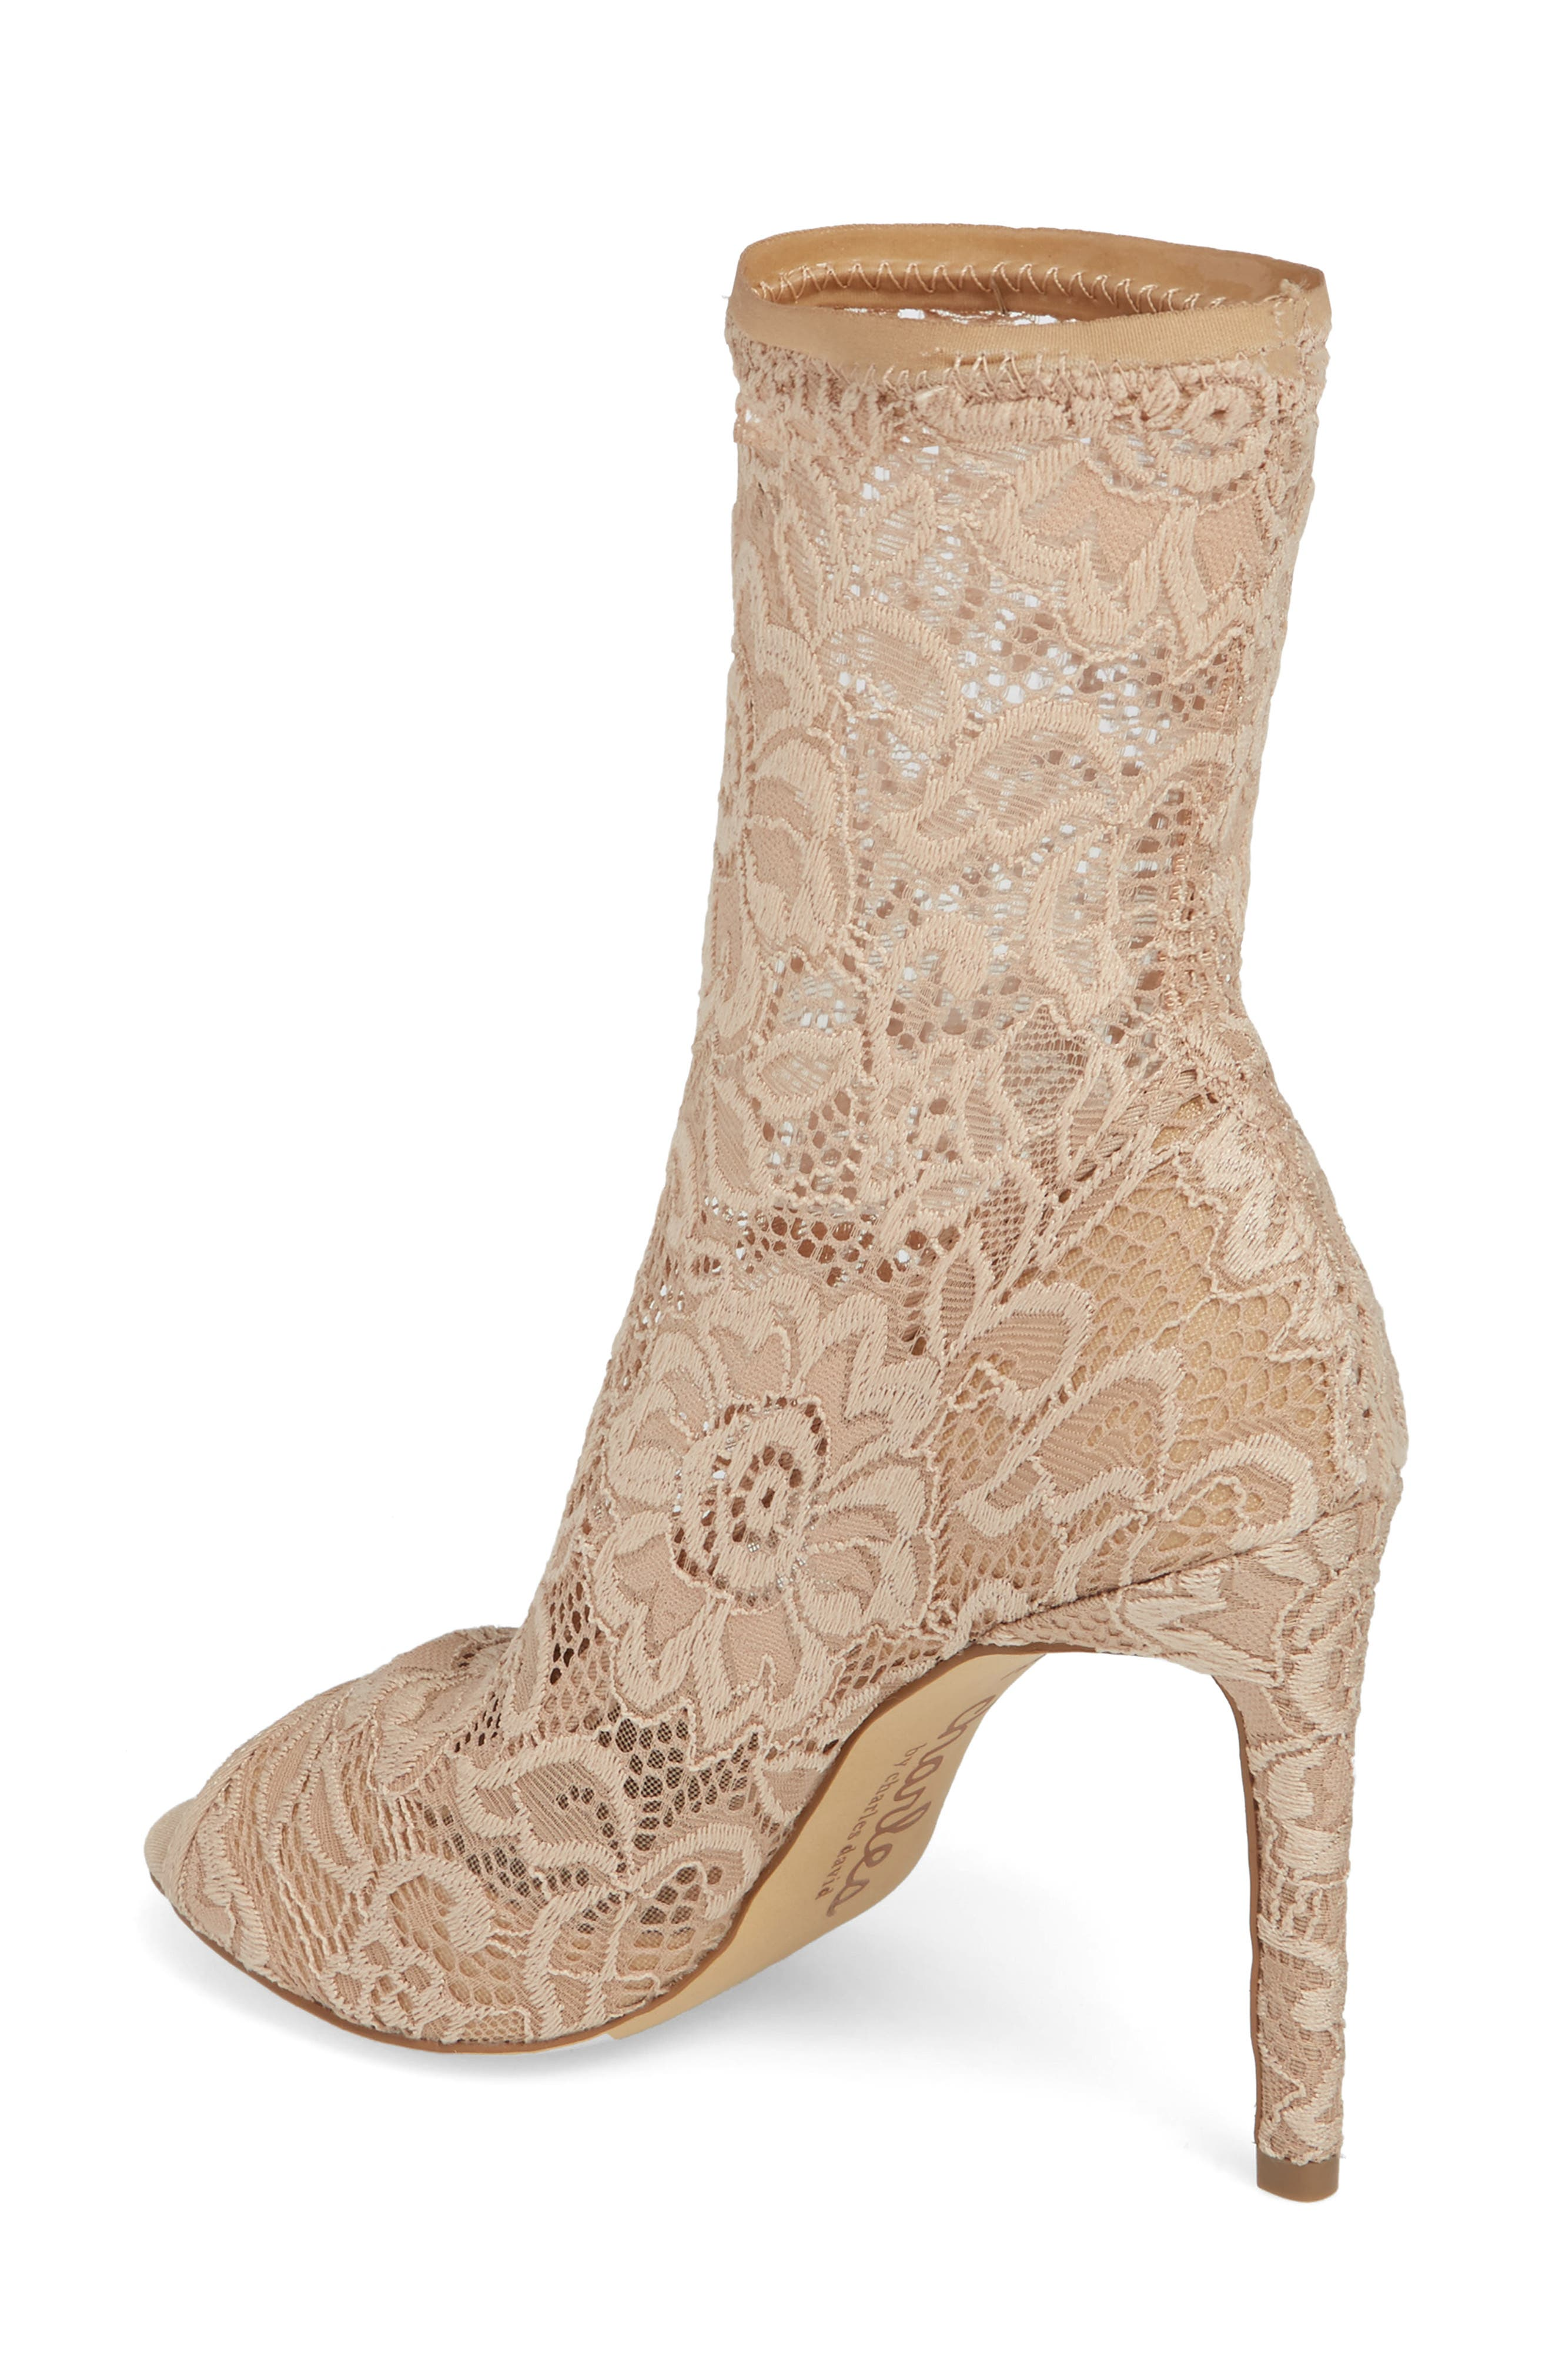 CHARLES BY CHARLES DAVID, Imaginary Lace Sock Bootie, Alternate thumbnail 2, color, NUDE FABRIC